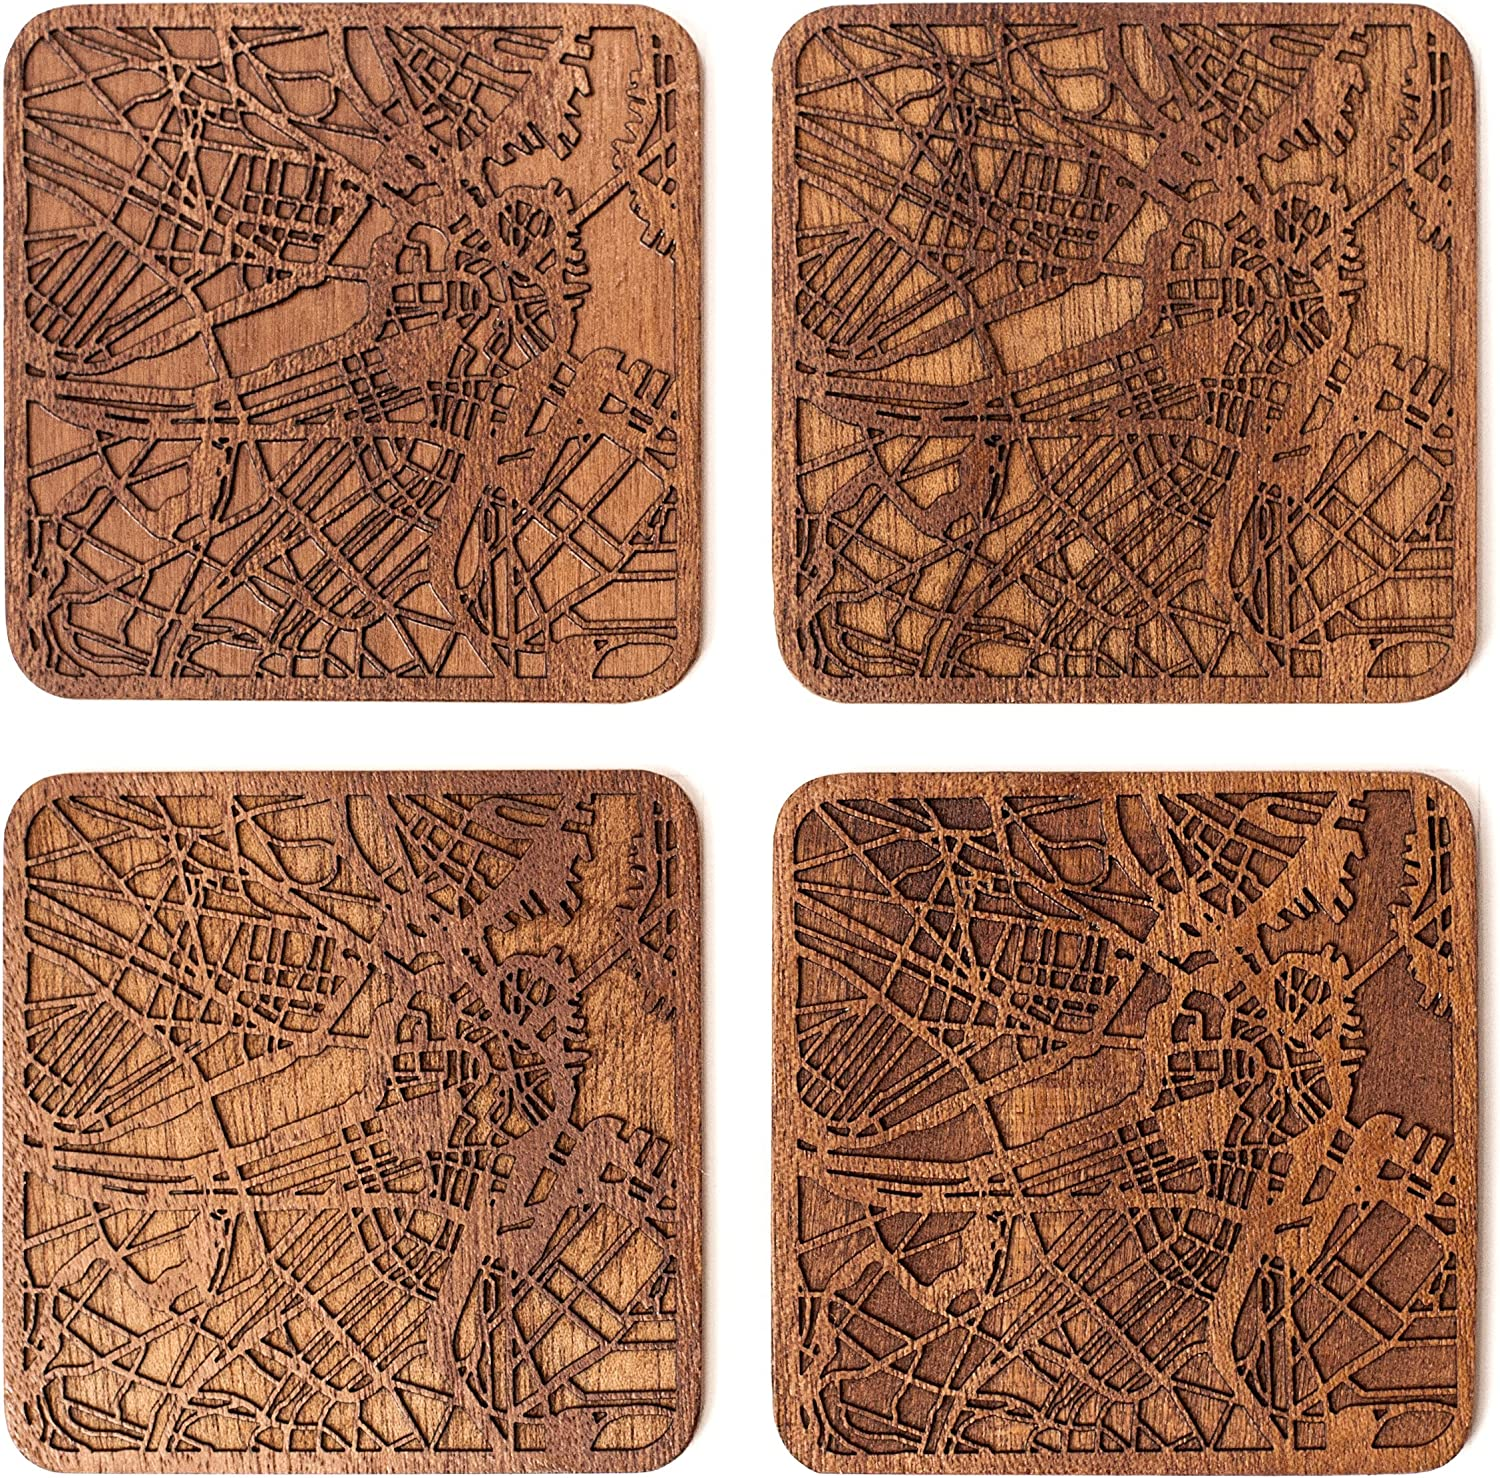 Boston Map Coaster by O3 Design Studio, Set Of 4, Sapele Wooden Coaster With City Map, Handmade